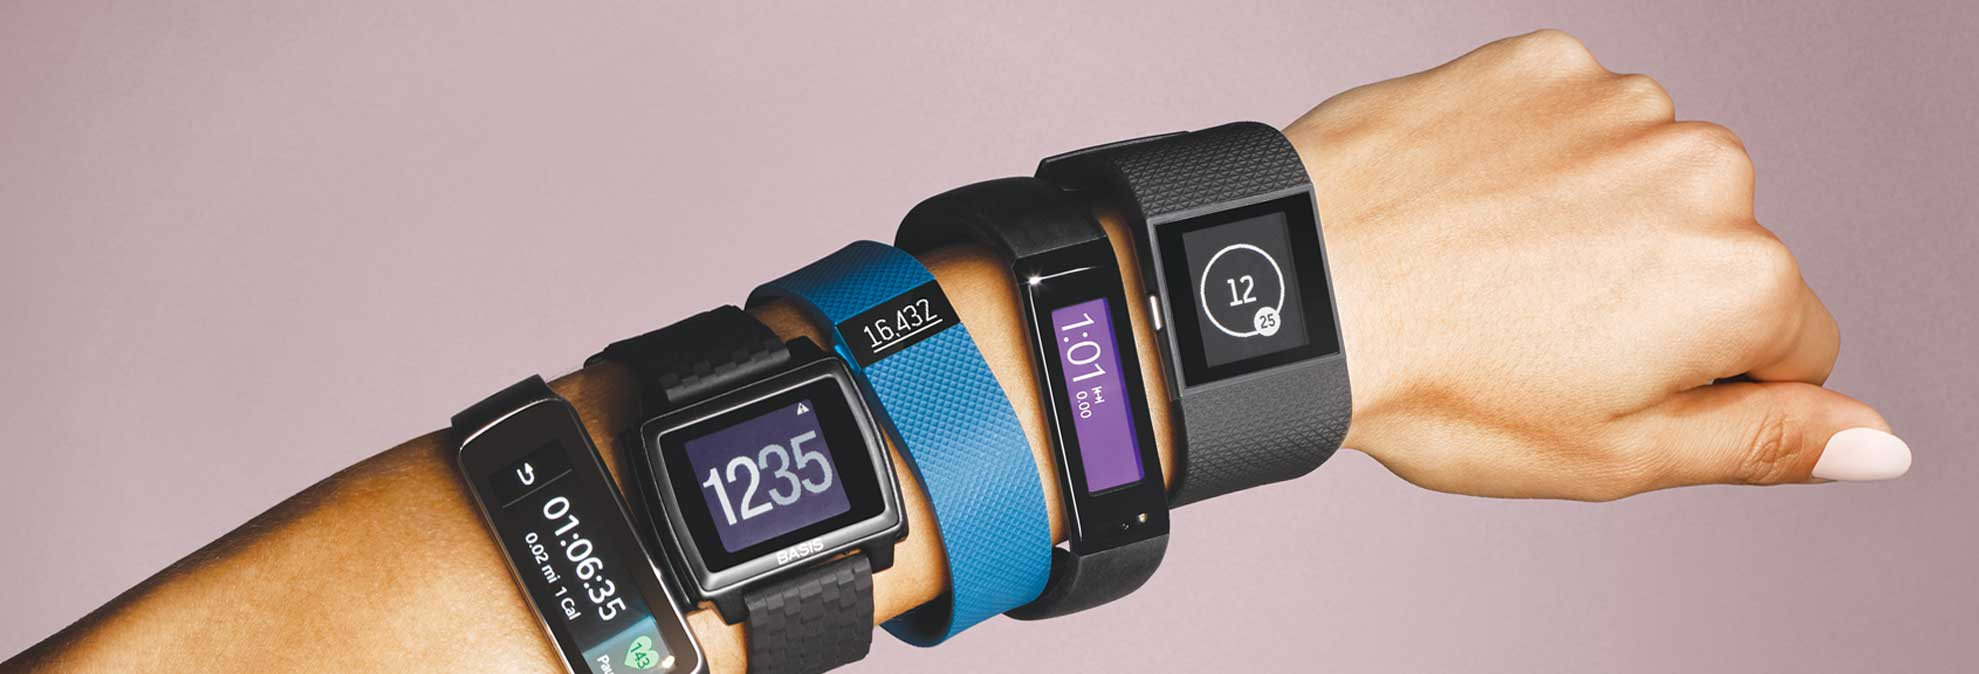 Best Fitness Tracker Buying Guide - Consumer Reports